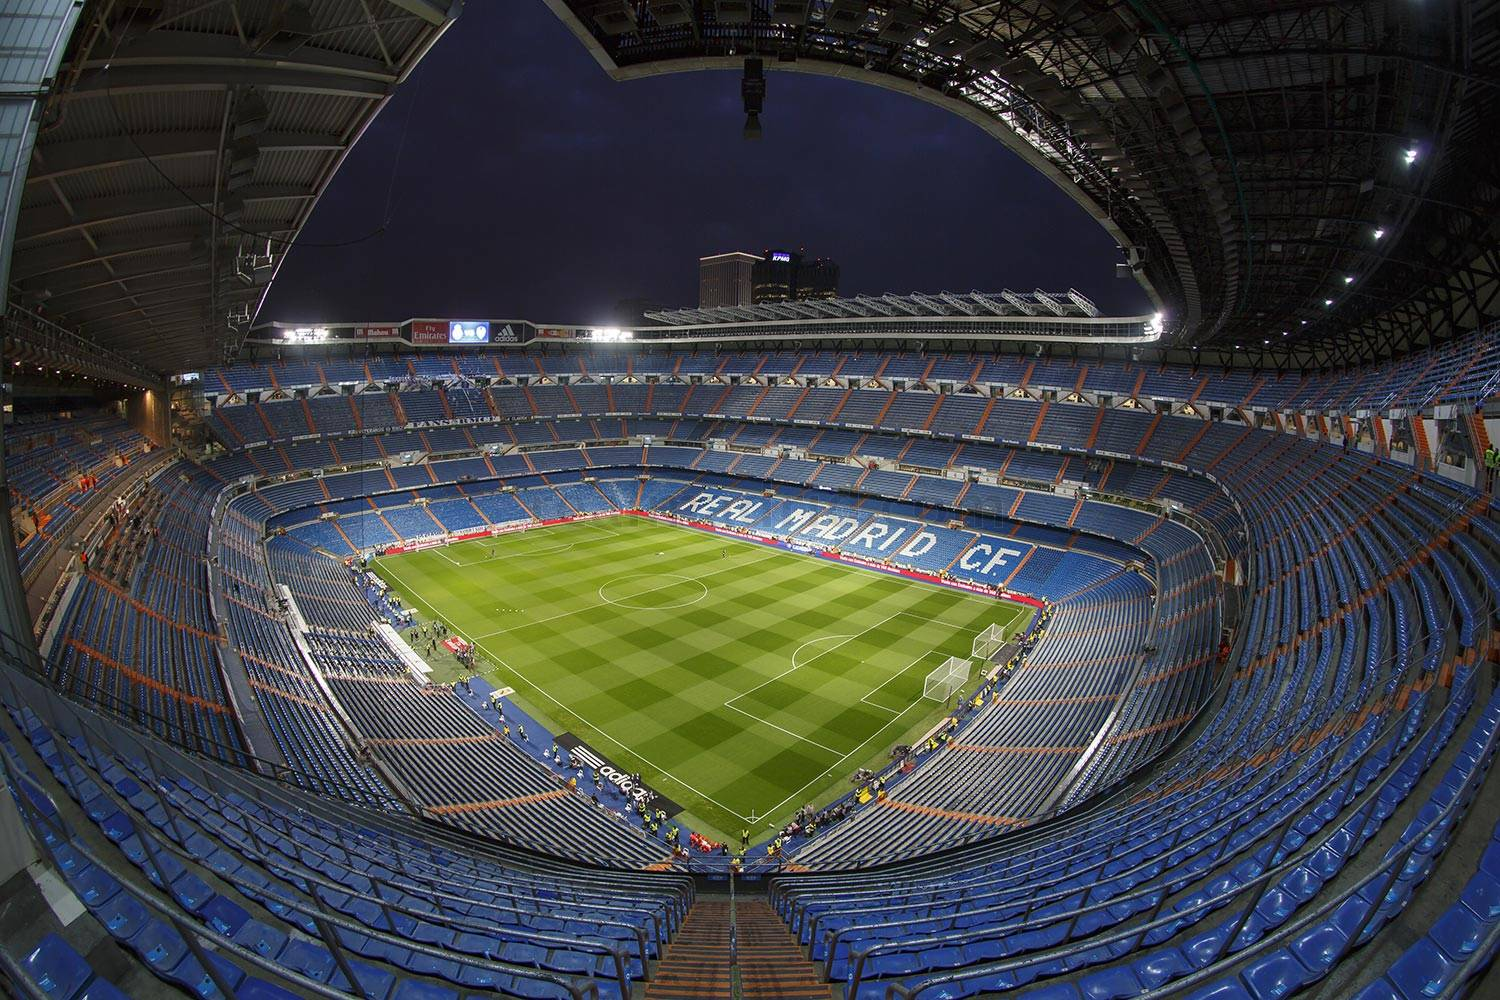 Real Madrid - Plano general del Santiago Bernabéu - 29-11-2018